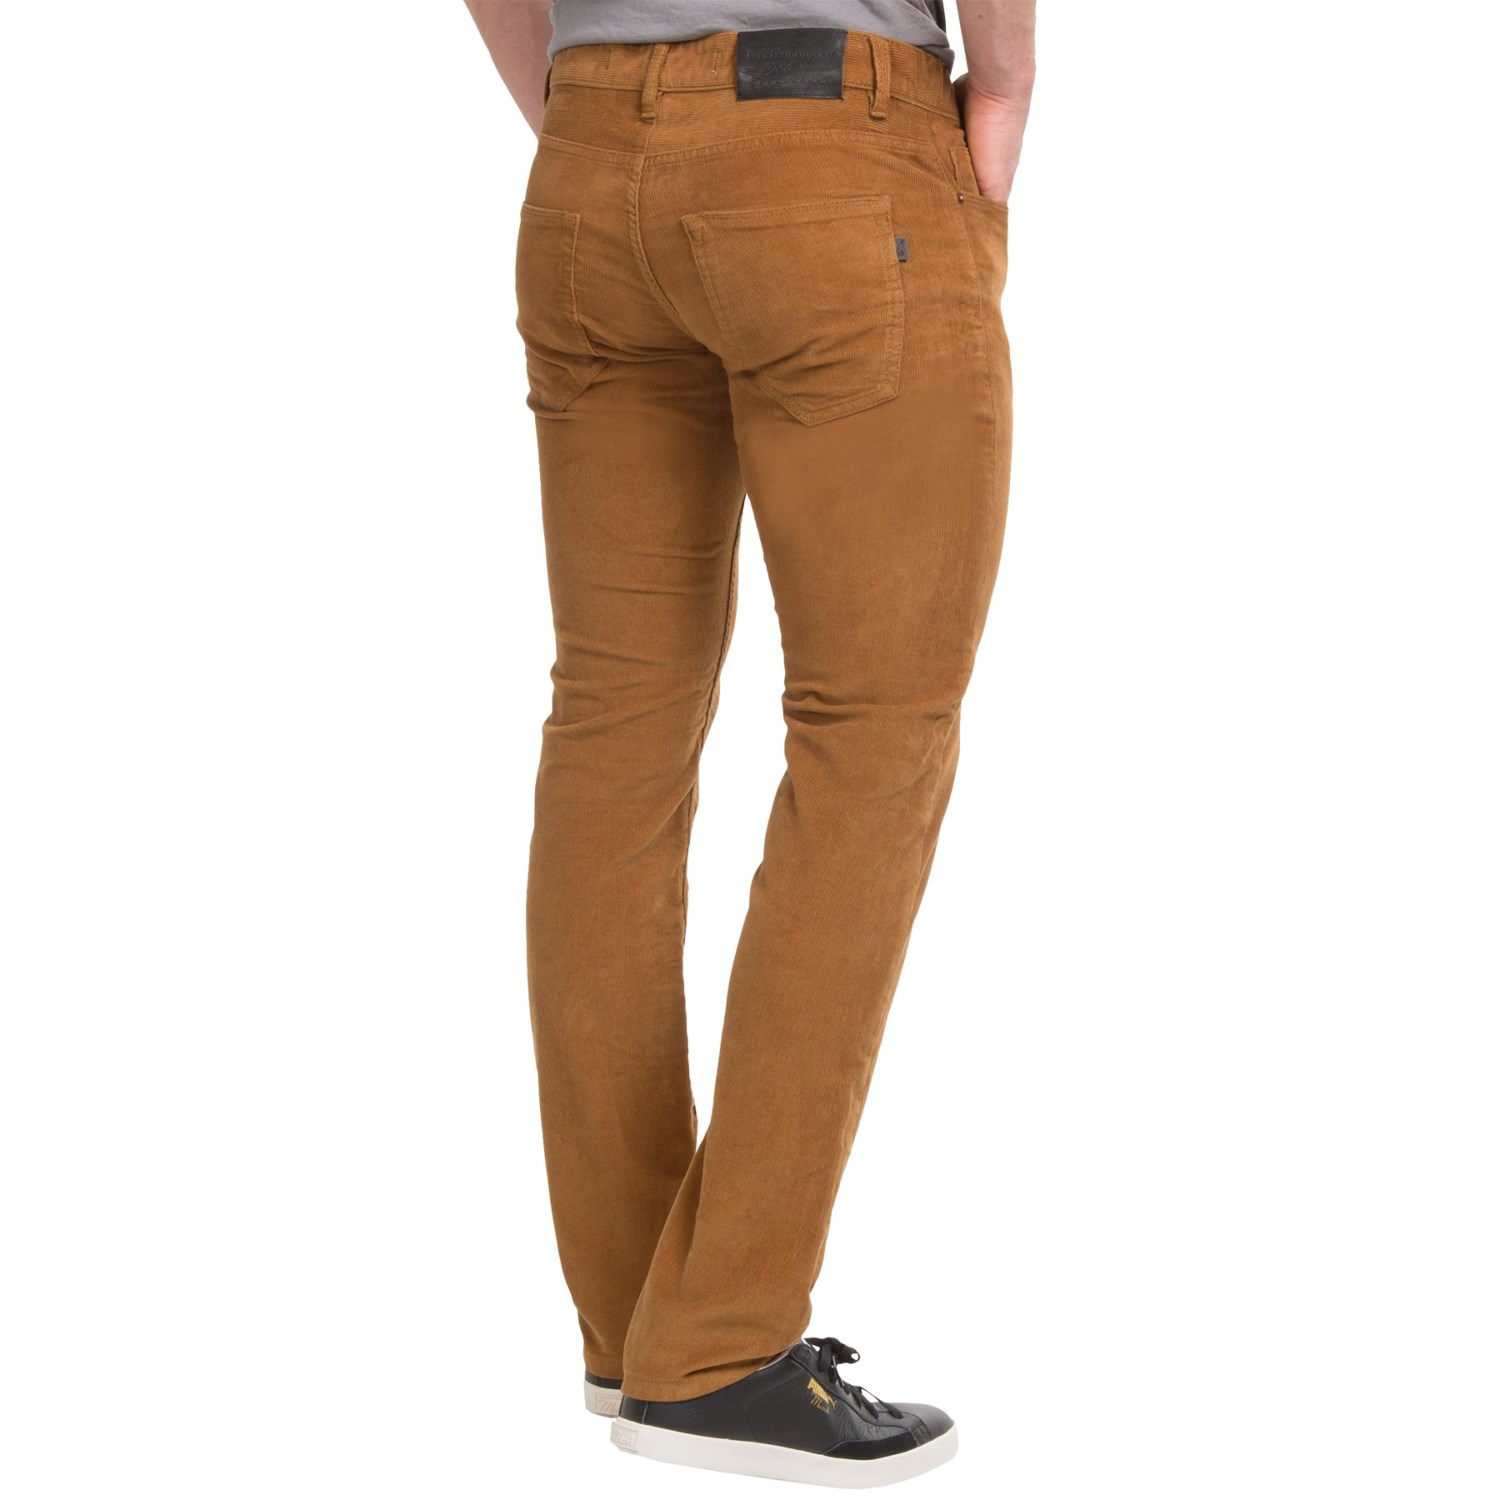 Peak Performance Barrow Corduroy Pants (For Men) - Save 59%